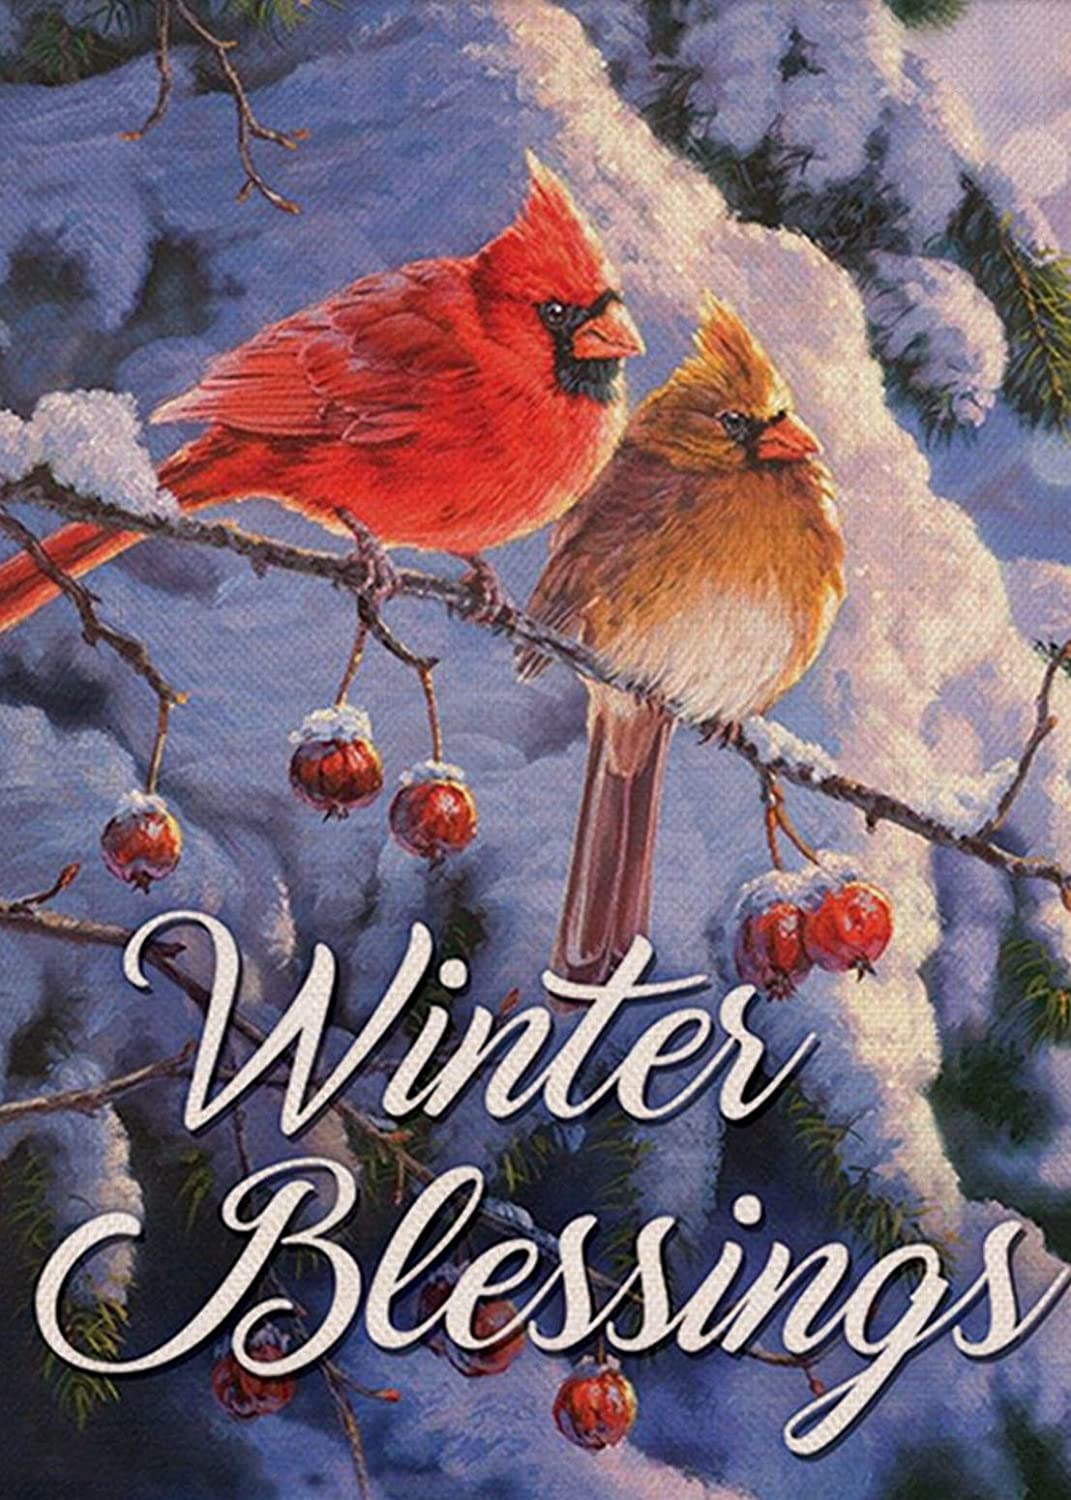 Furiaz Winter Blessings Garden Flag Cardinals, Snowy Home Decorative House Yard Small Flag Birds Welcome Decor Sign Double Sided, Christmas Holiday Outdoor Decorations Xmas Seasonal Outside Flag 12x18